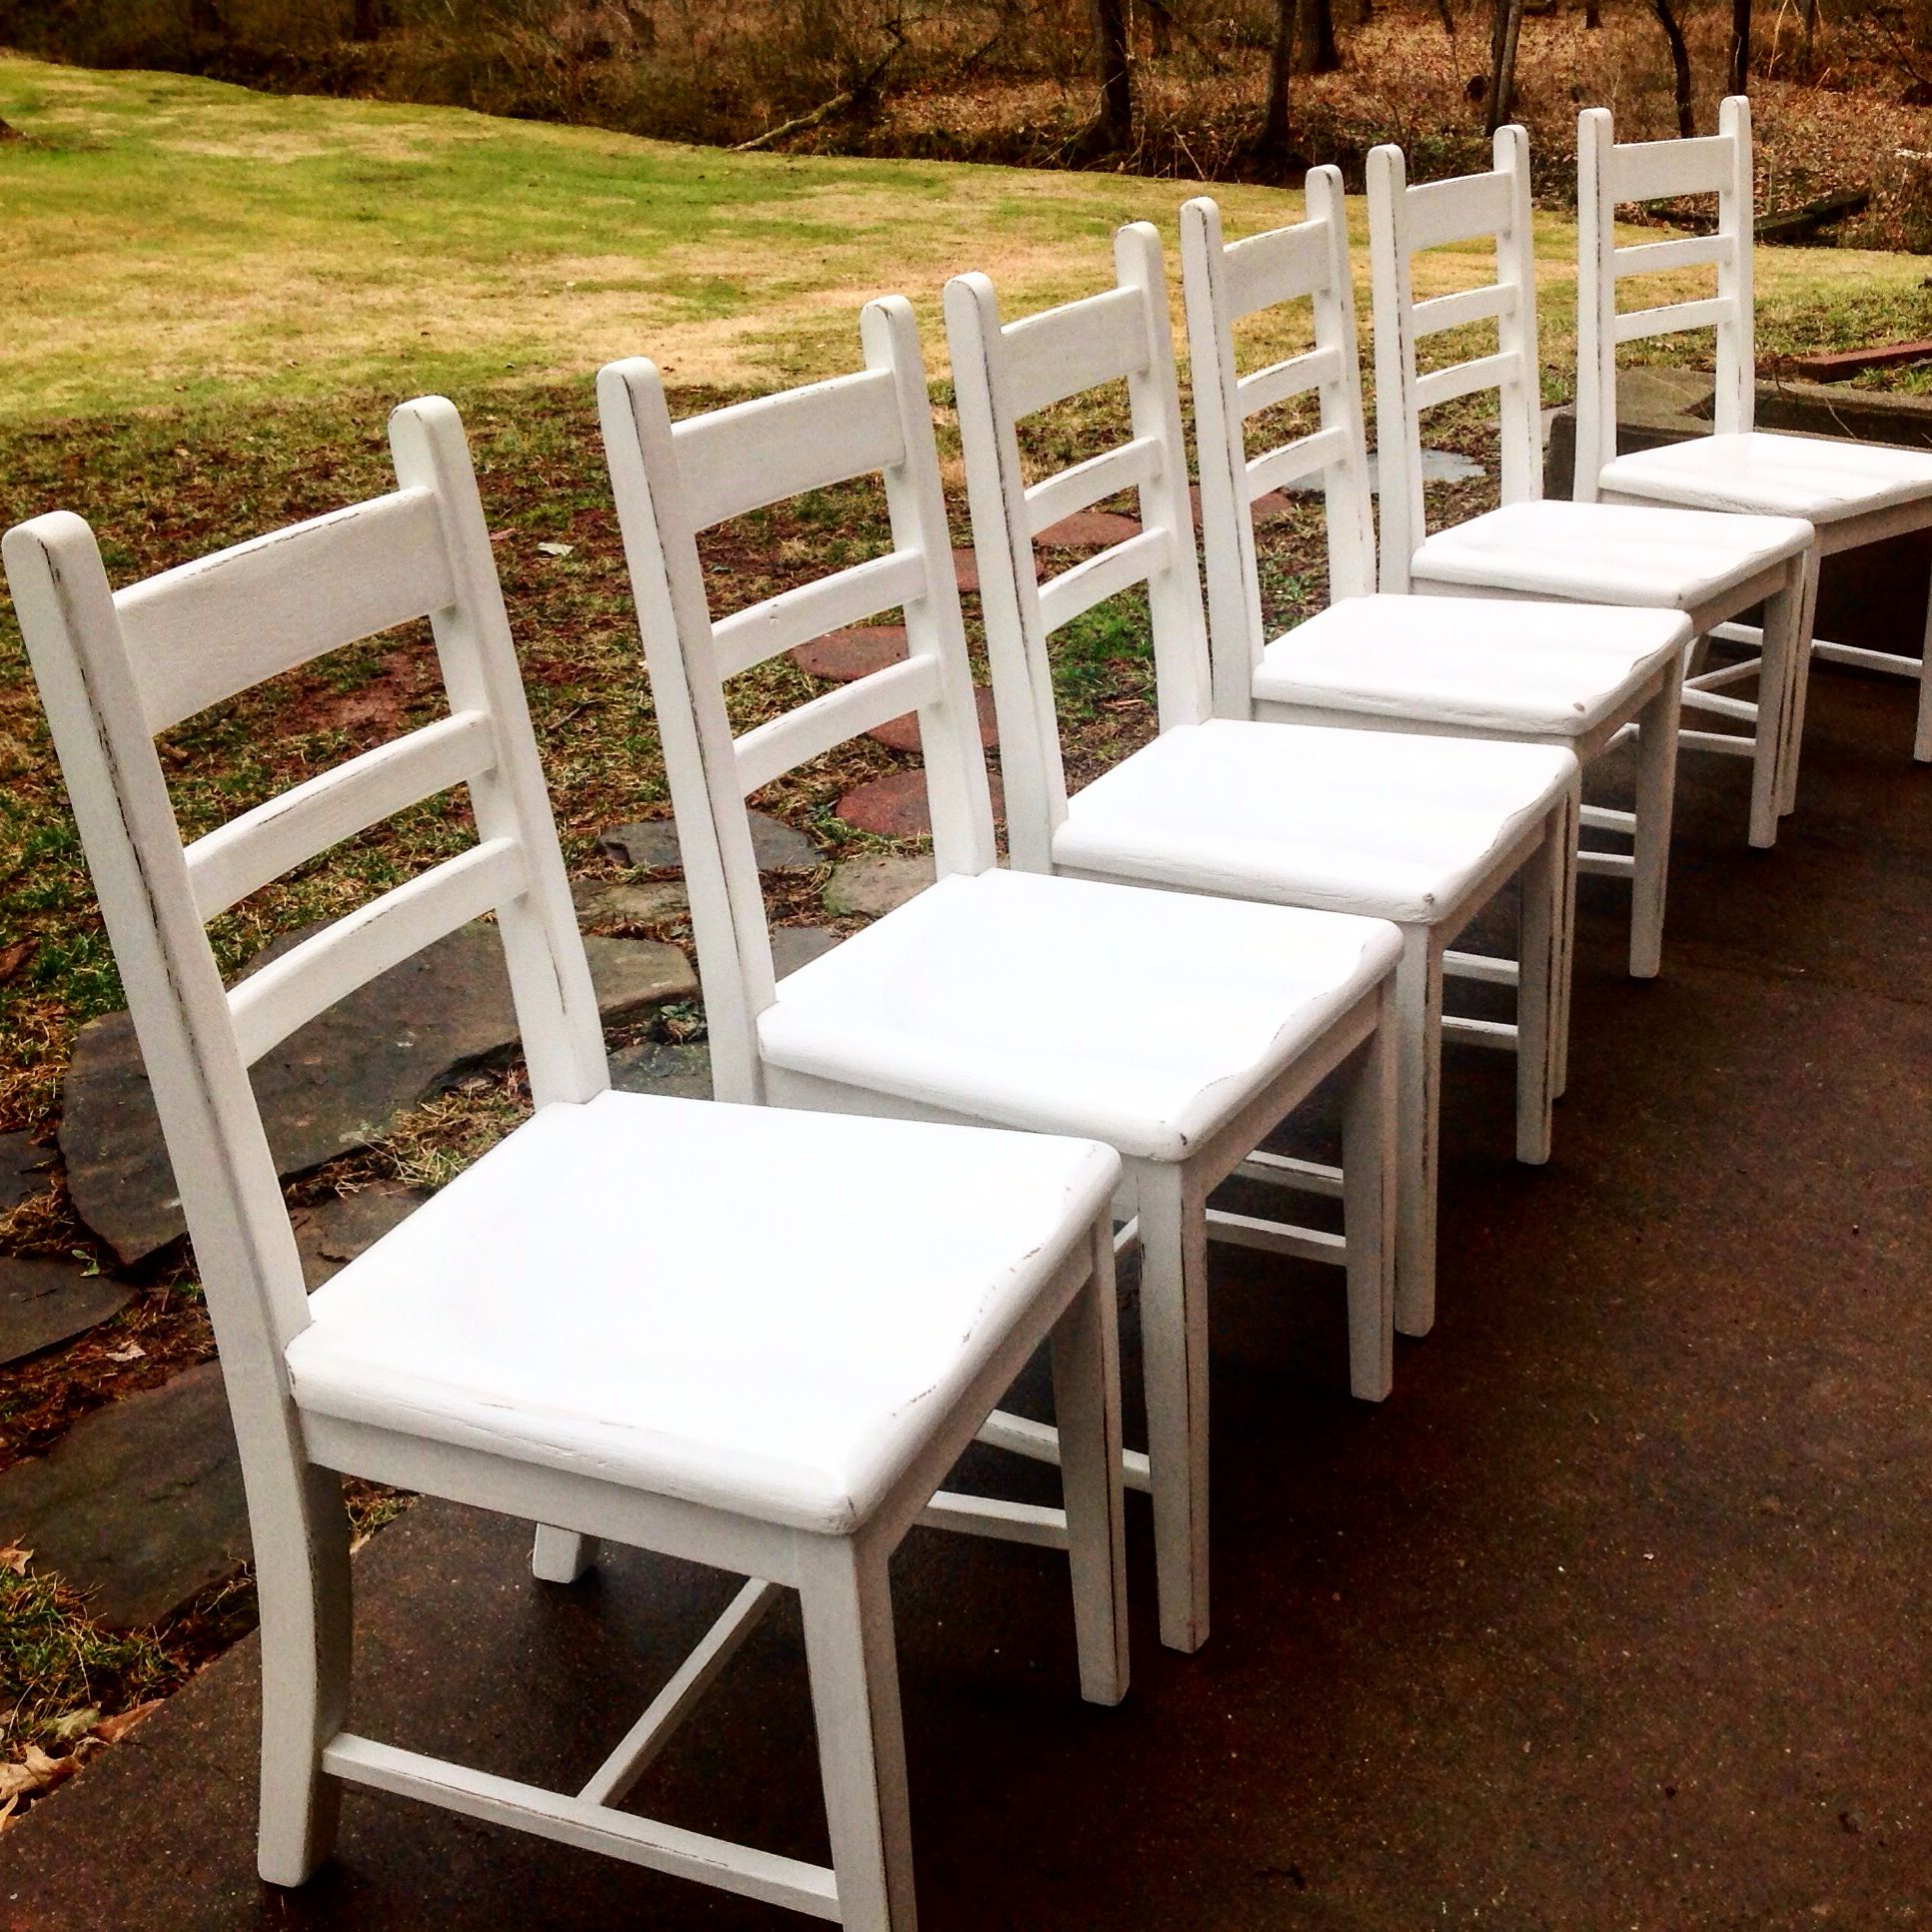 Farmhouse chairs finished in Rustoleum's Chalked paint in